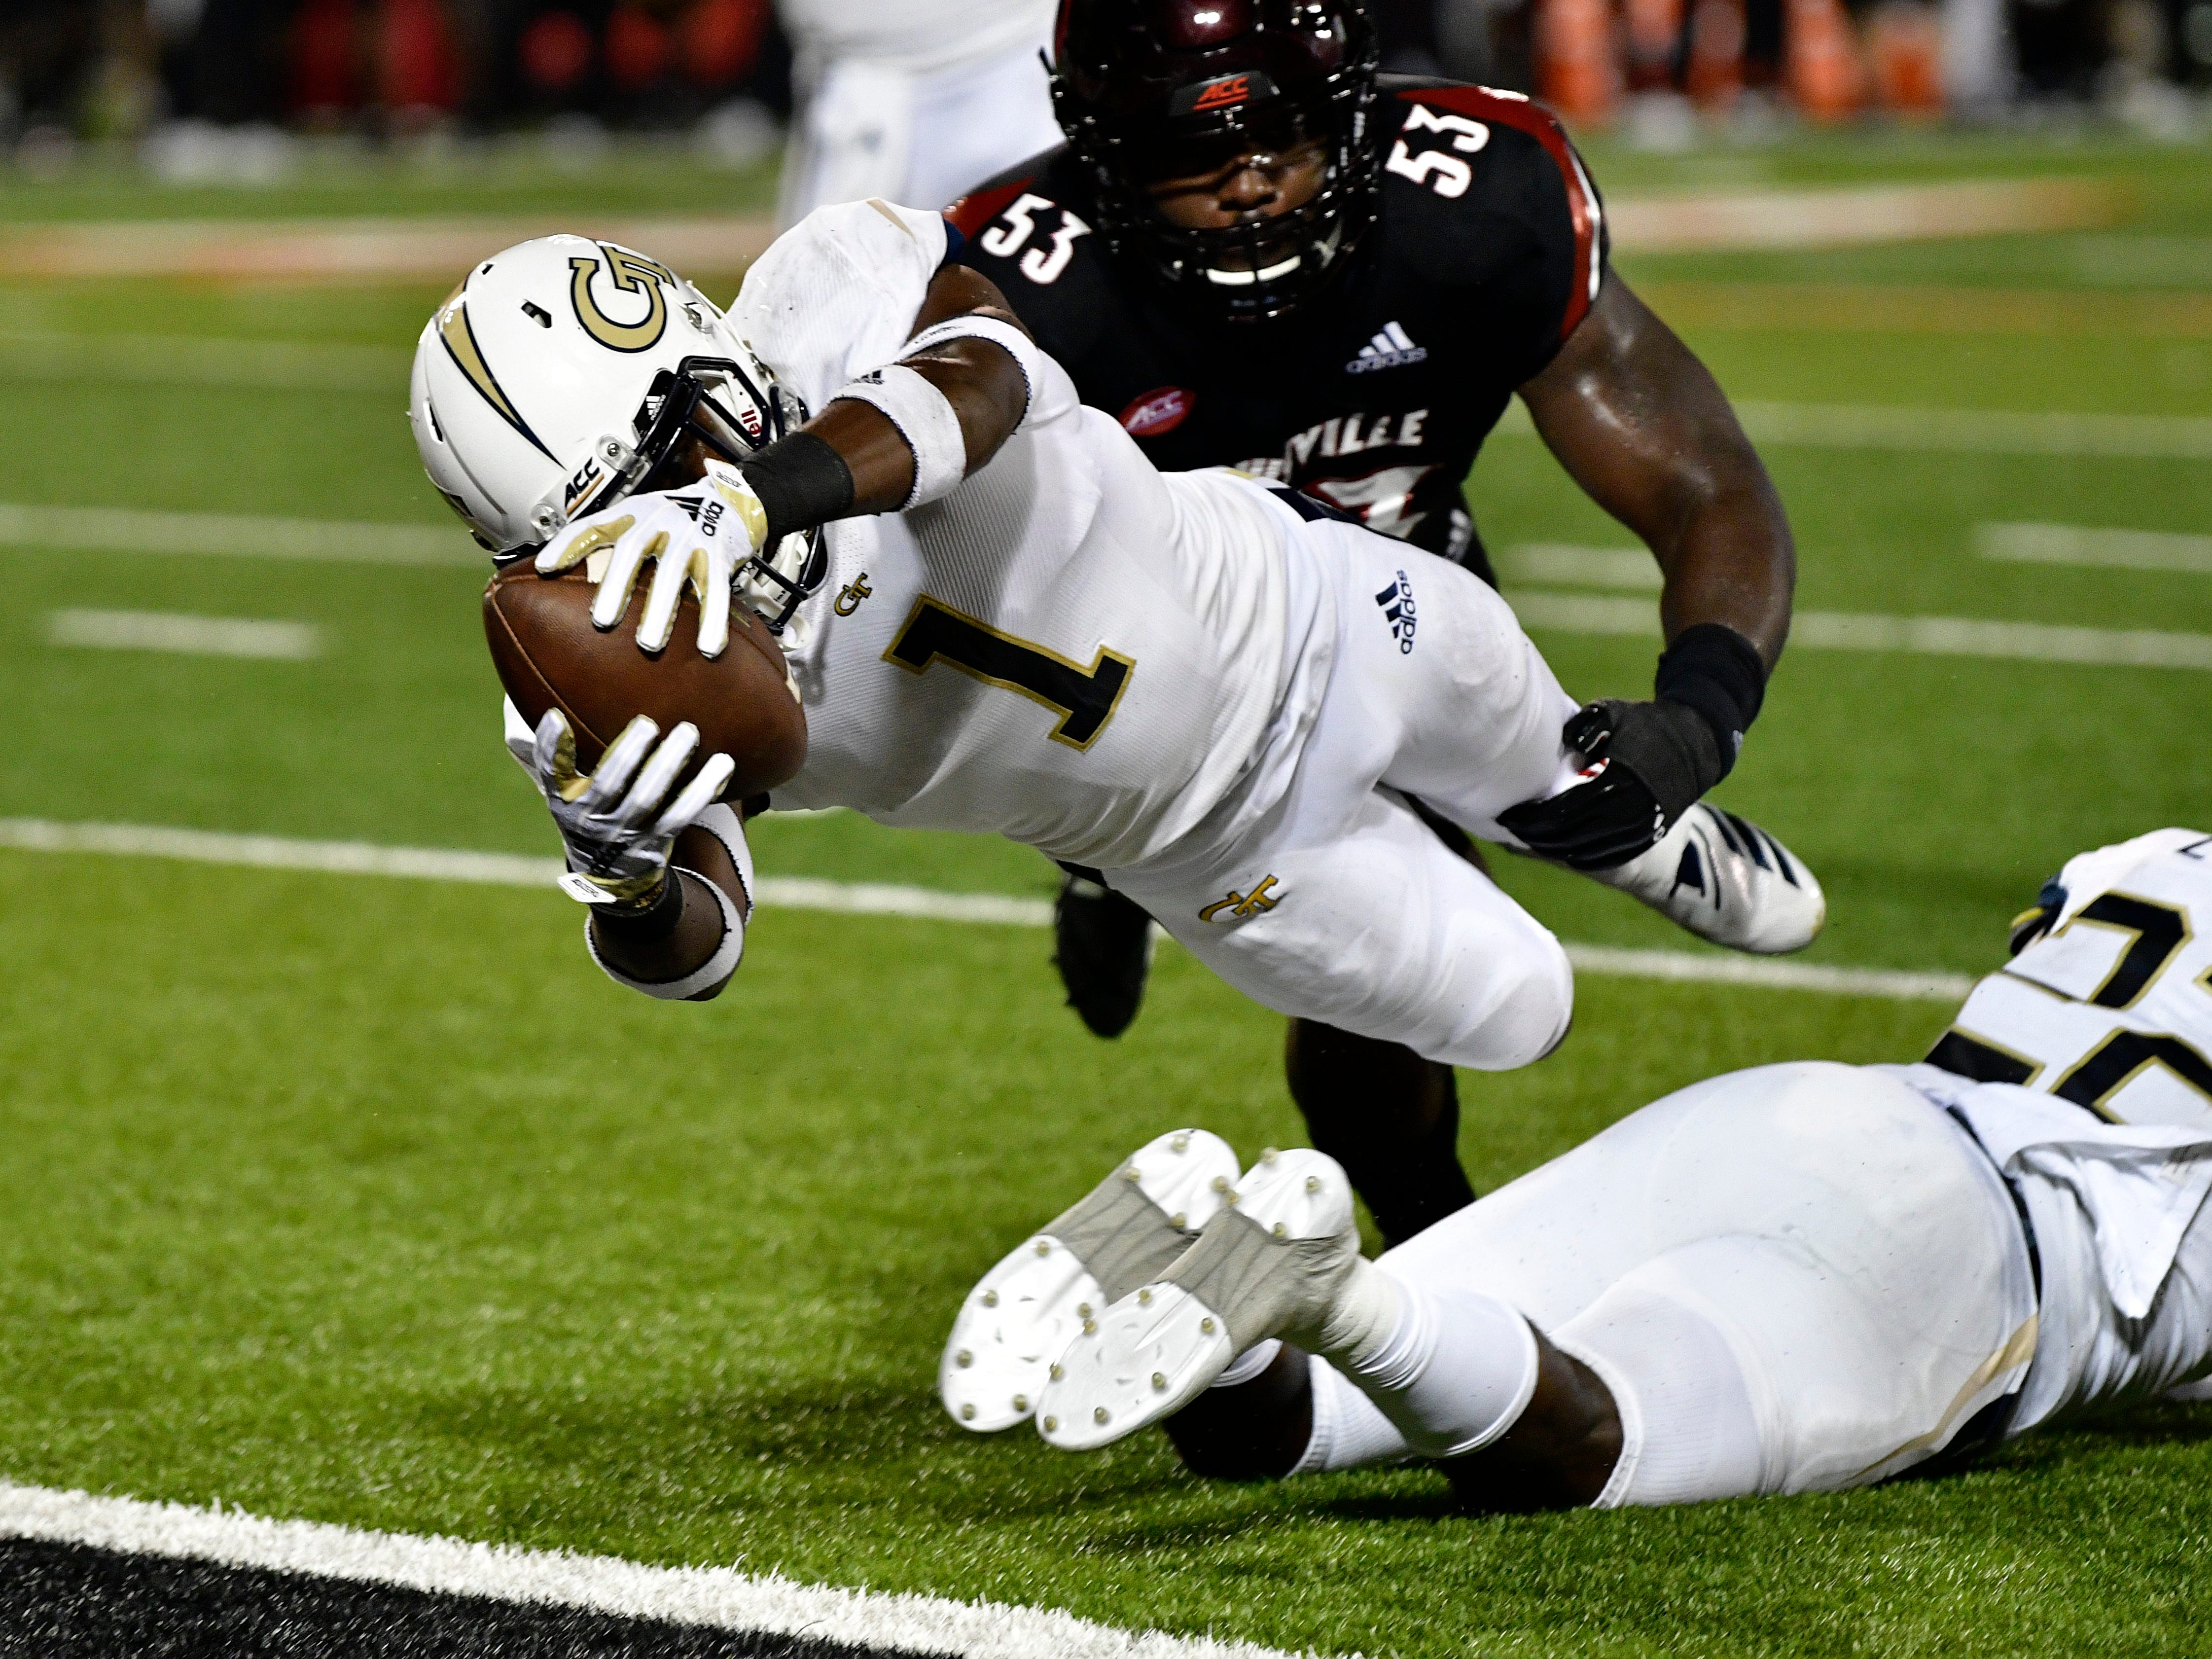 Georgia Tech running back Qua Searcy (1) dives into the end zone for a touchdown past Louisville defender Amonte Caban (53) during the second half.